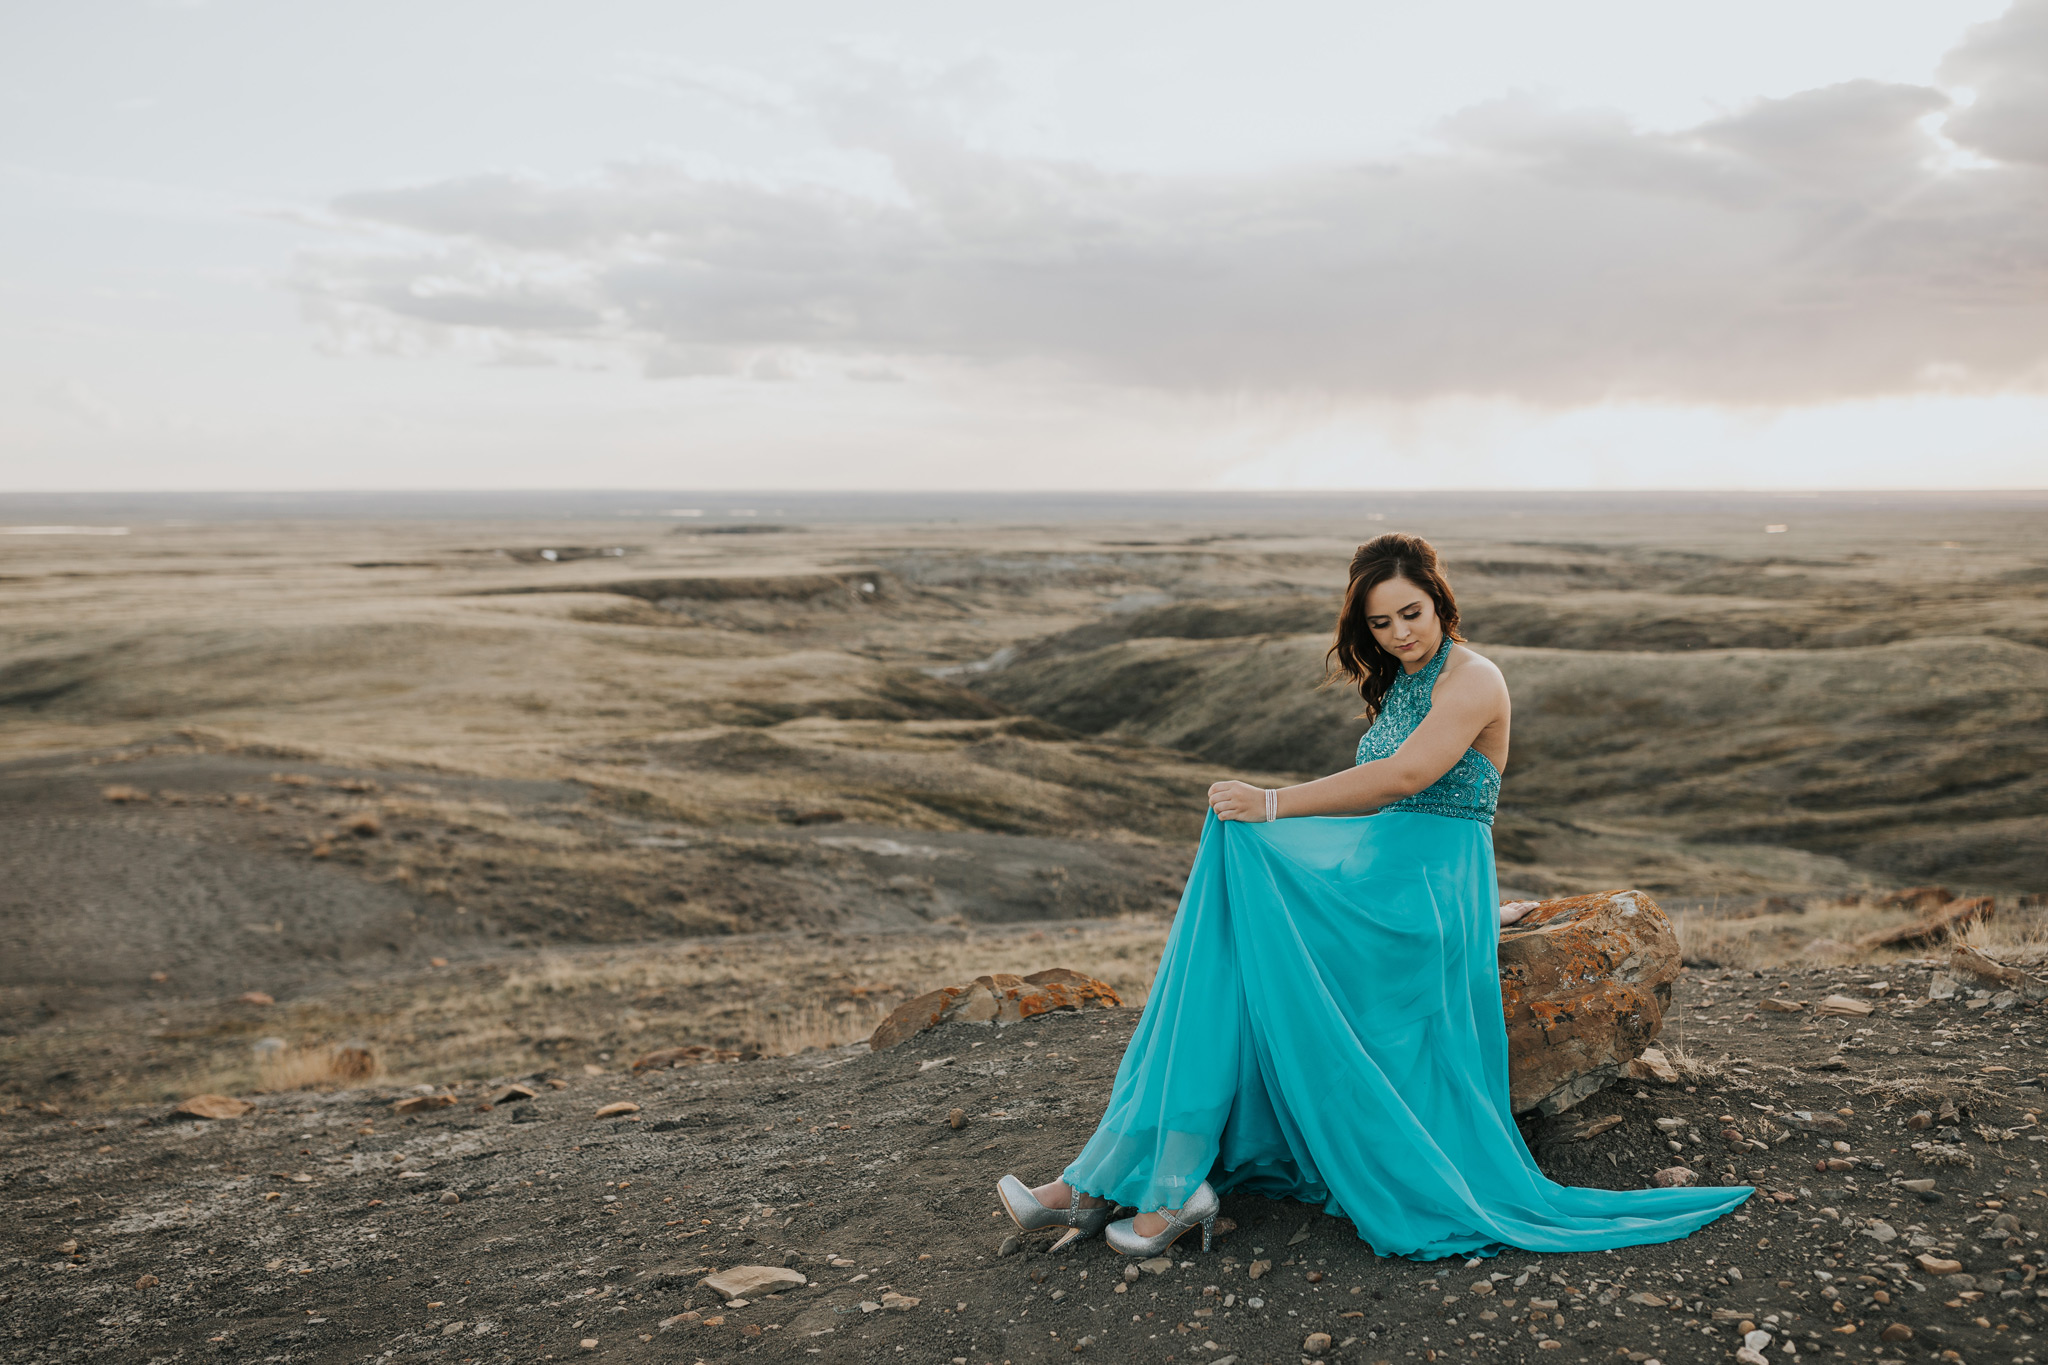 grad girl sitting on rock moving dress skirt with view of landscape